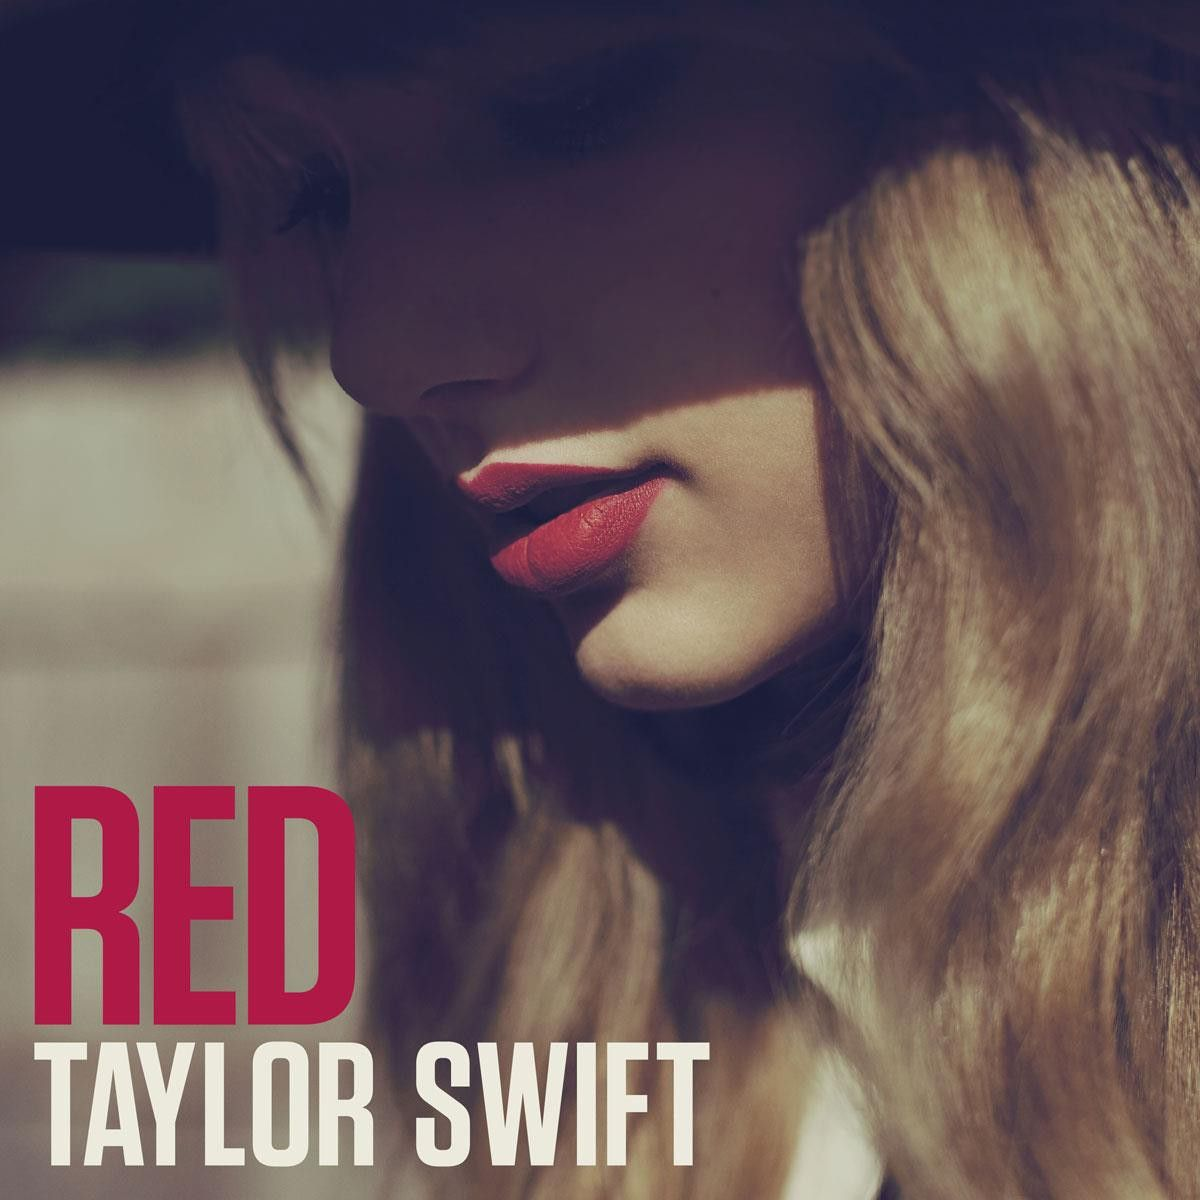 taylor swift red album cover hd wallpaper | proyectos que intentar